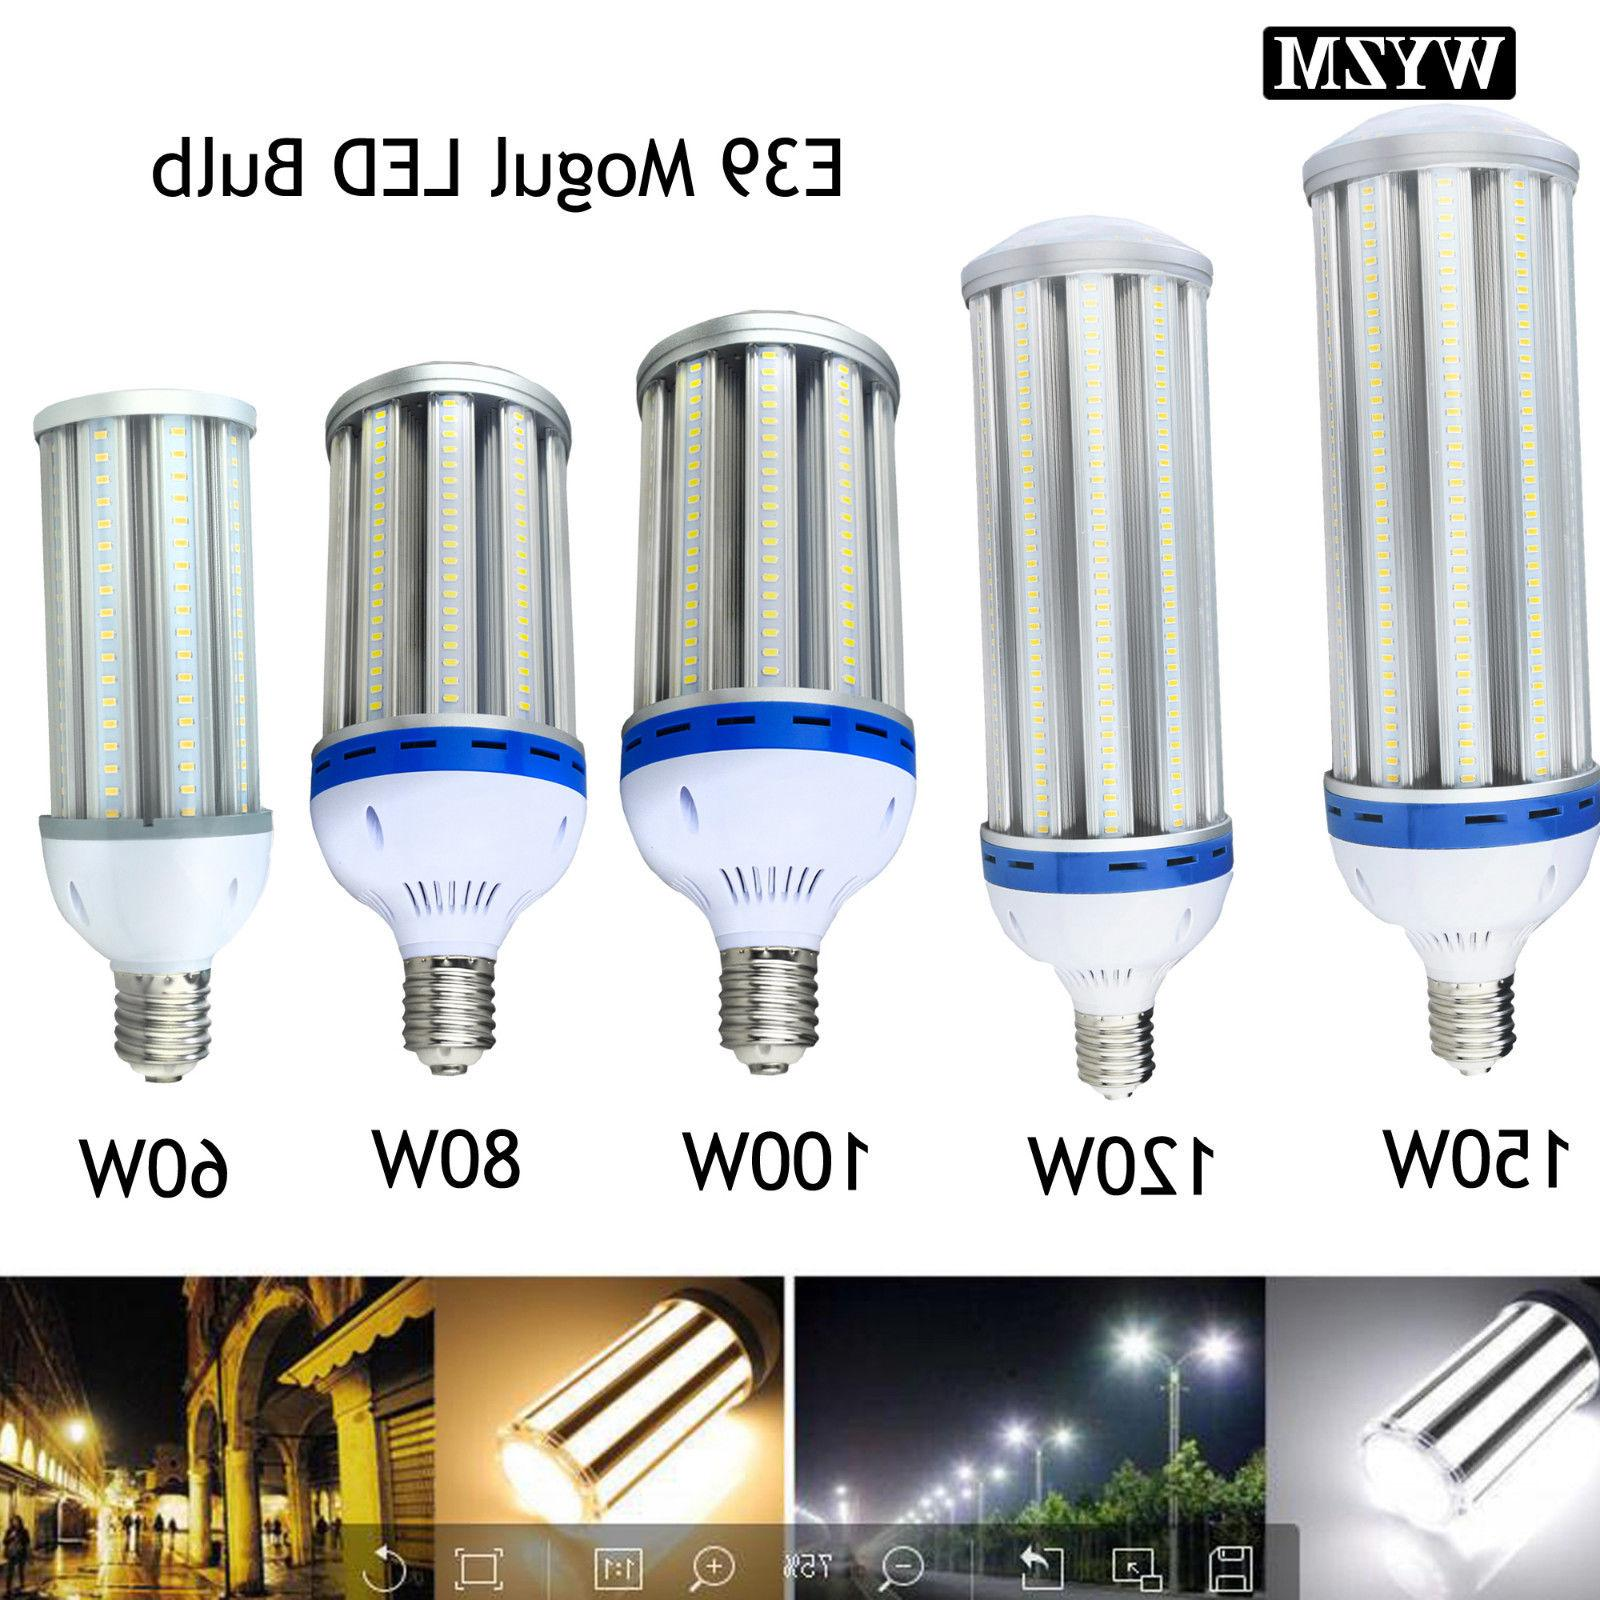 60W 80W 100W 120W LED Corn Light Bulb E39 Mogul Base Bulbs E